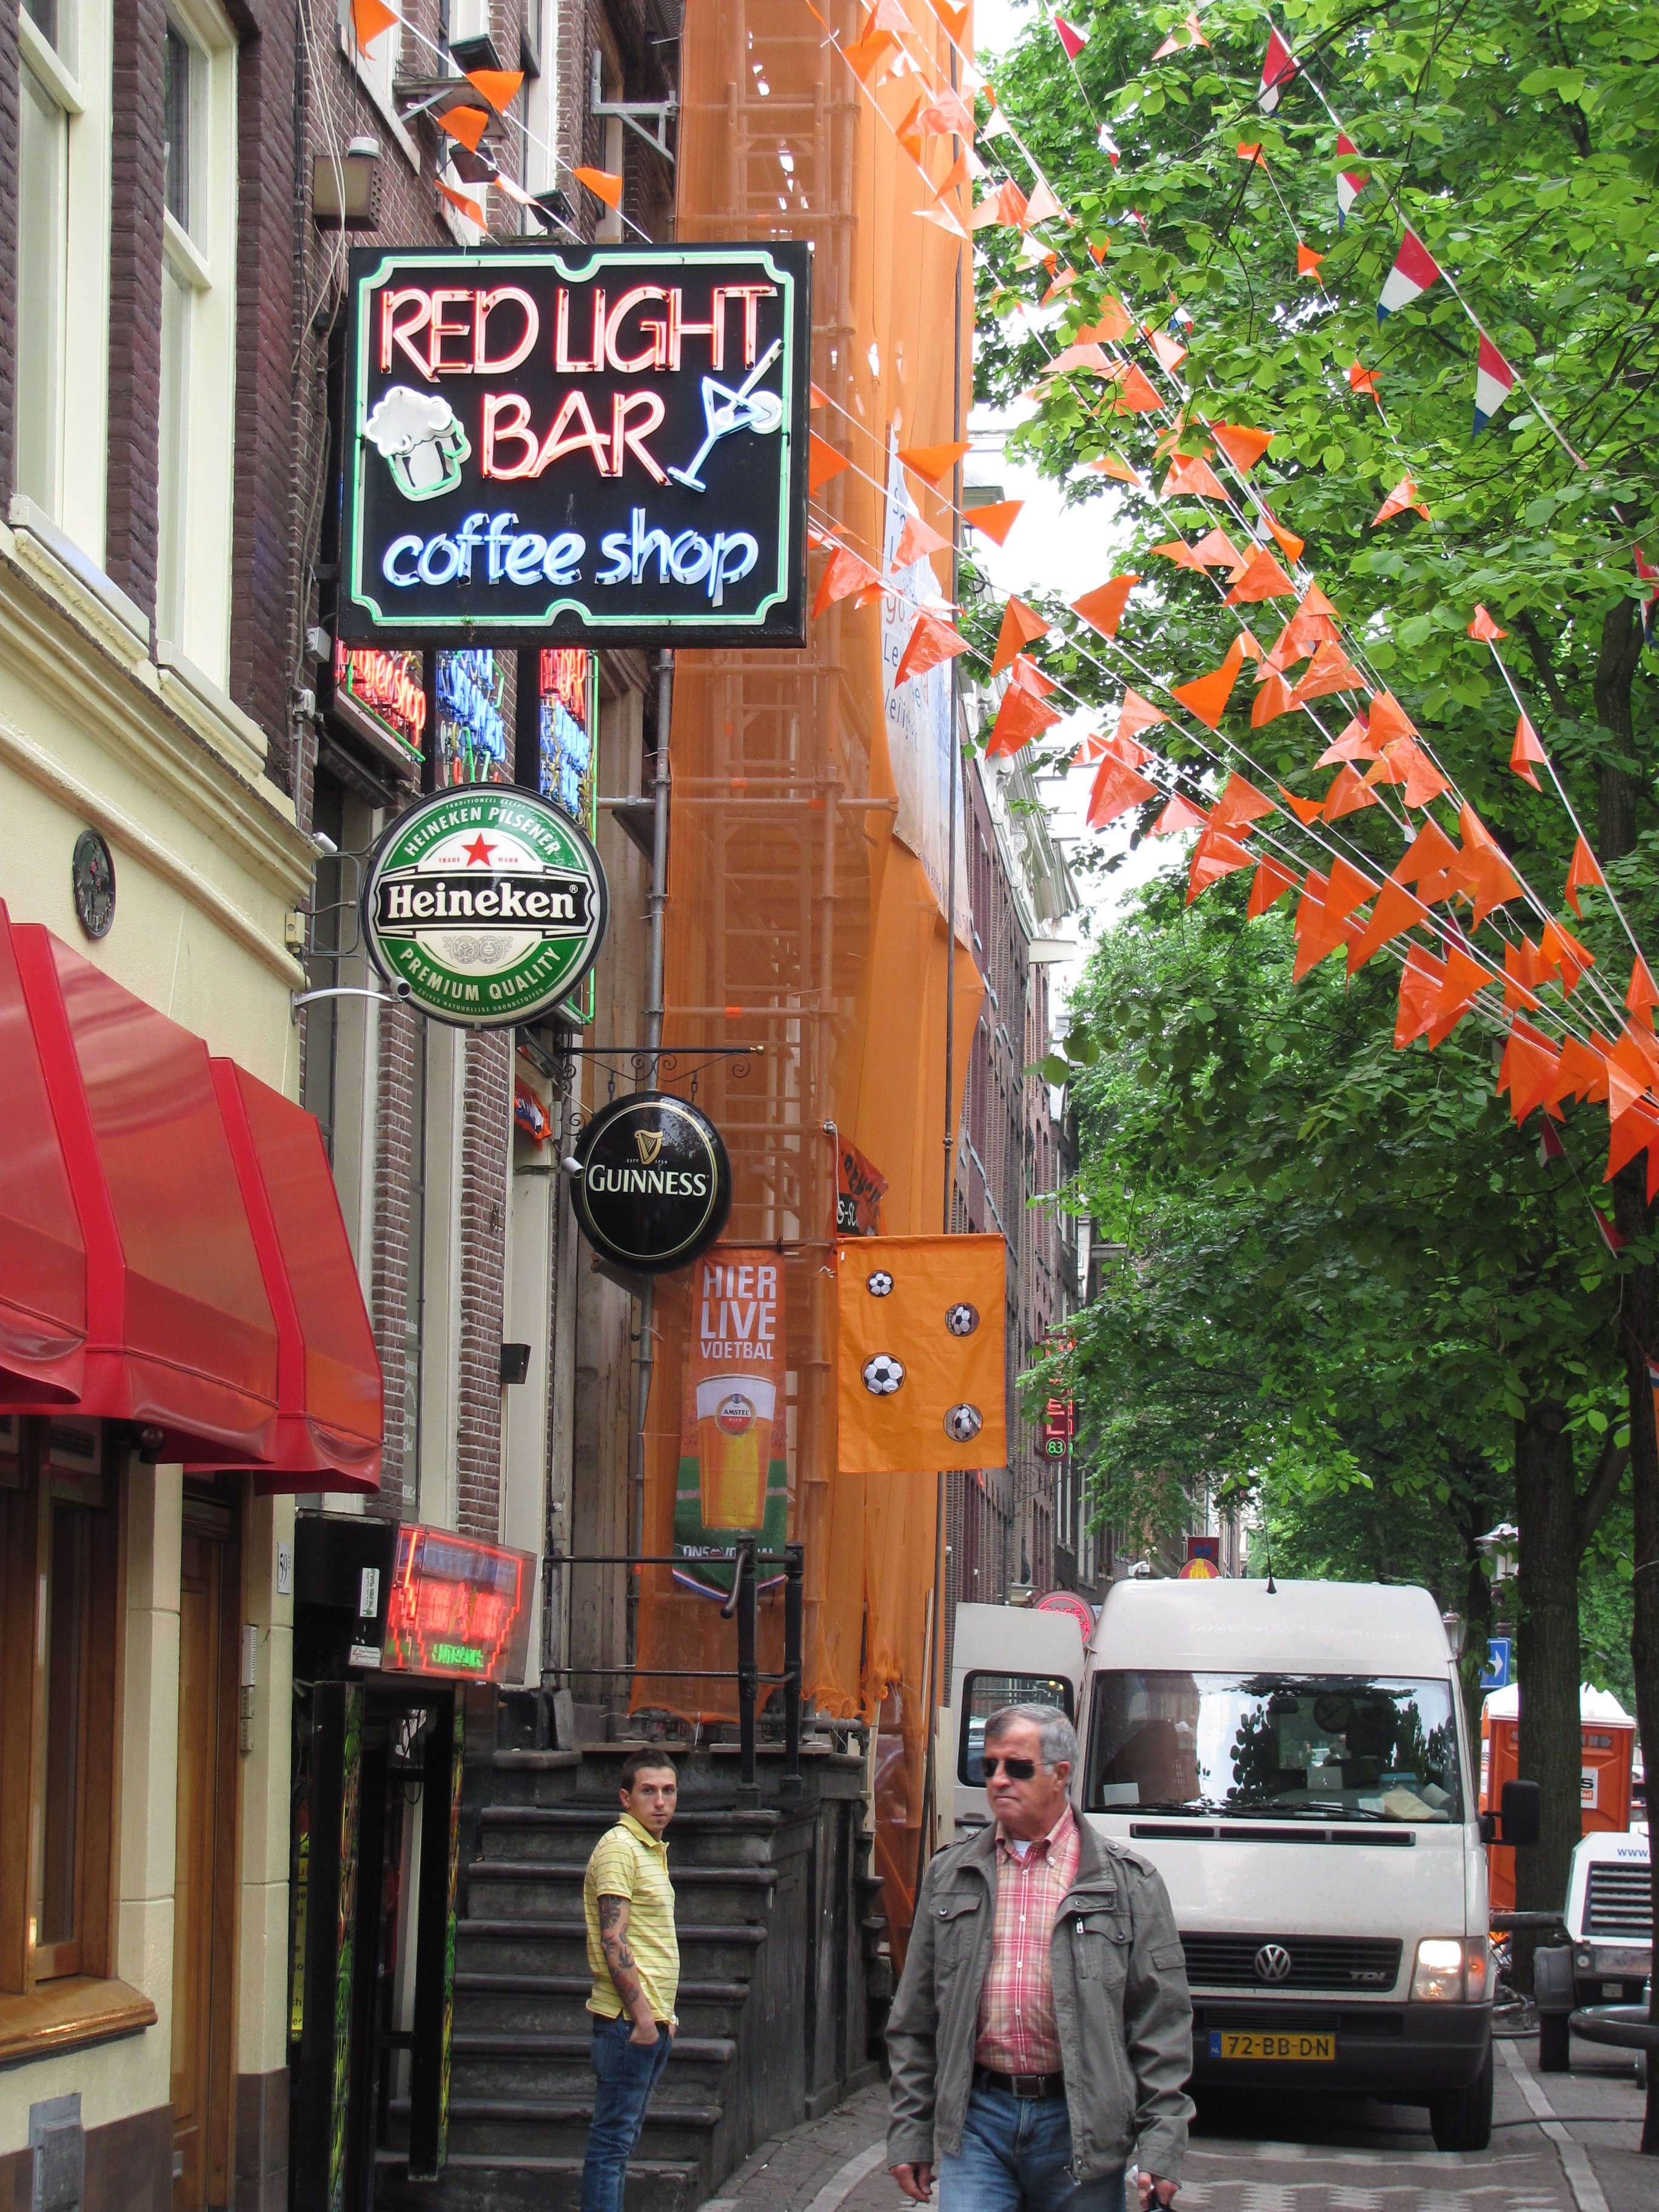 Peek Inside The World's Most Intriguing Red Light Districts